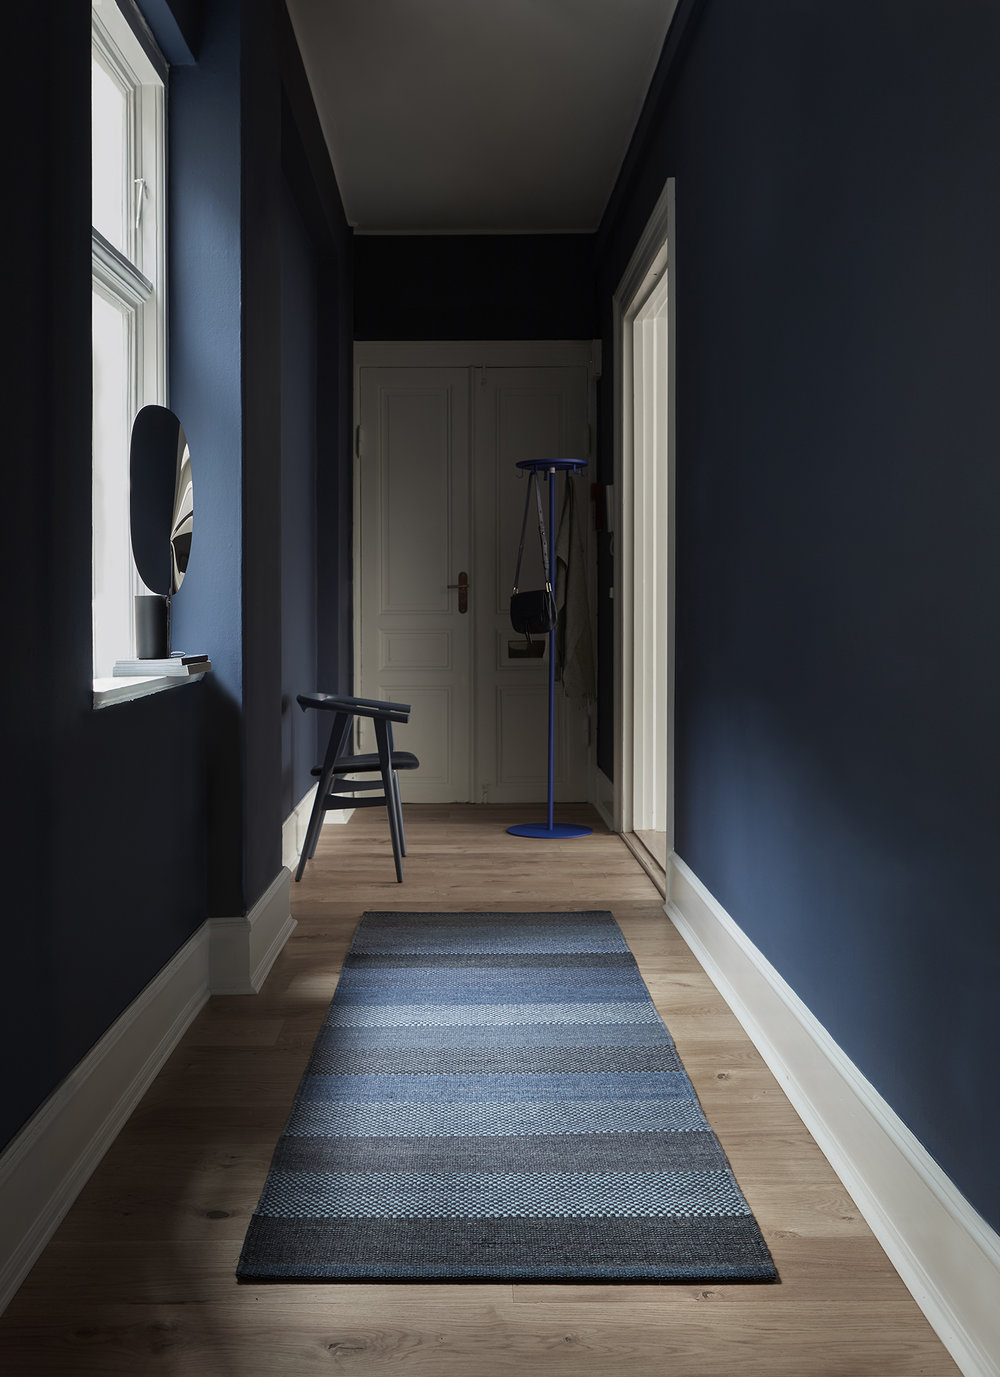 Fabula_Veronica_Rug_Blue_Wool_1717_A_300dpi_Large-2.jpg